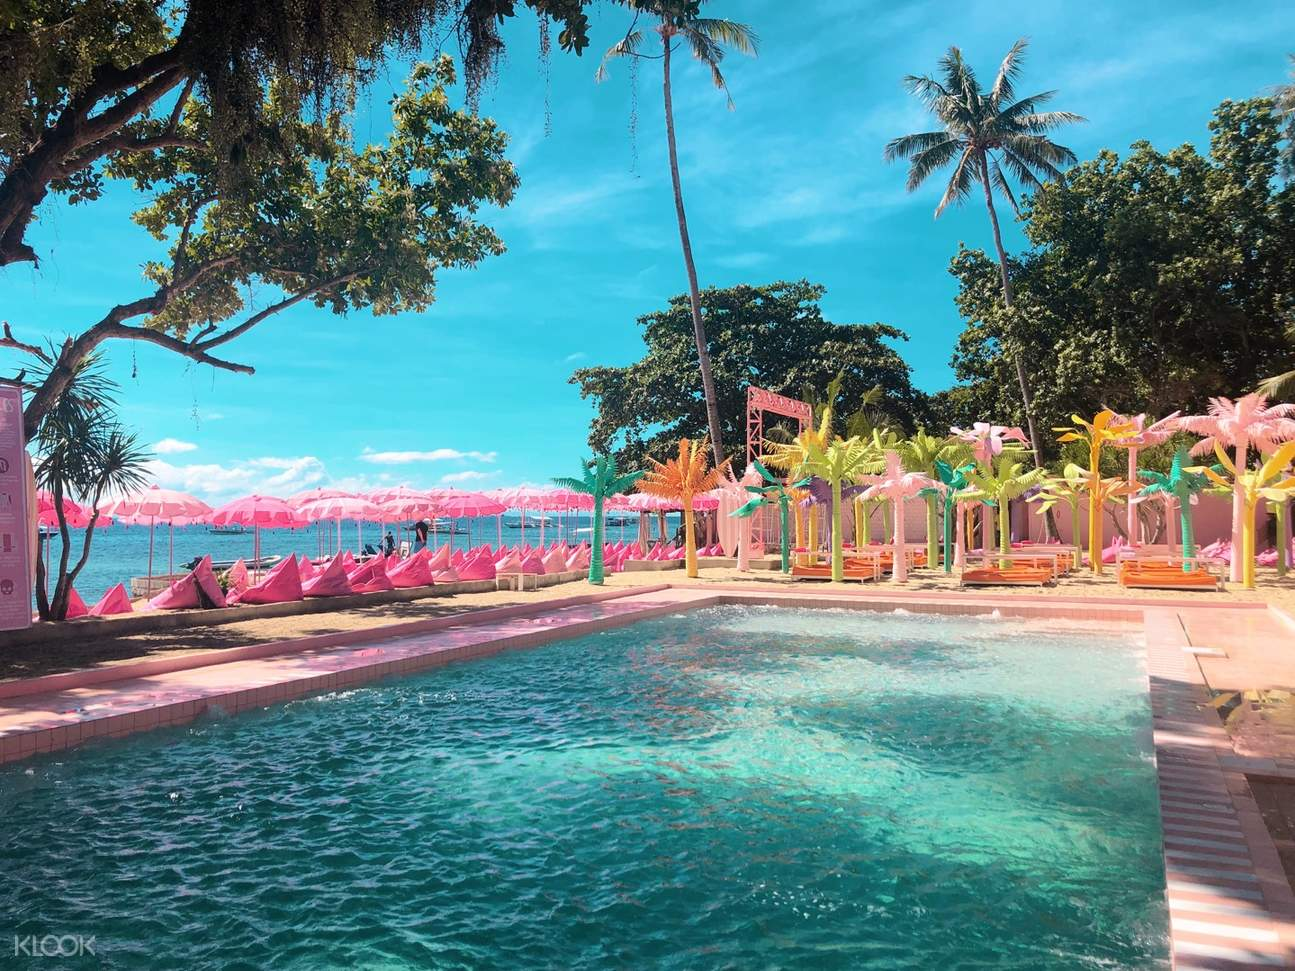 pink pool inflatable park happy beach